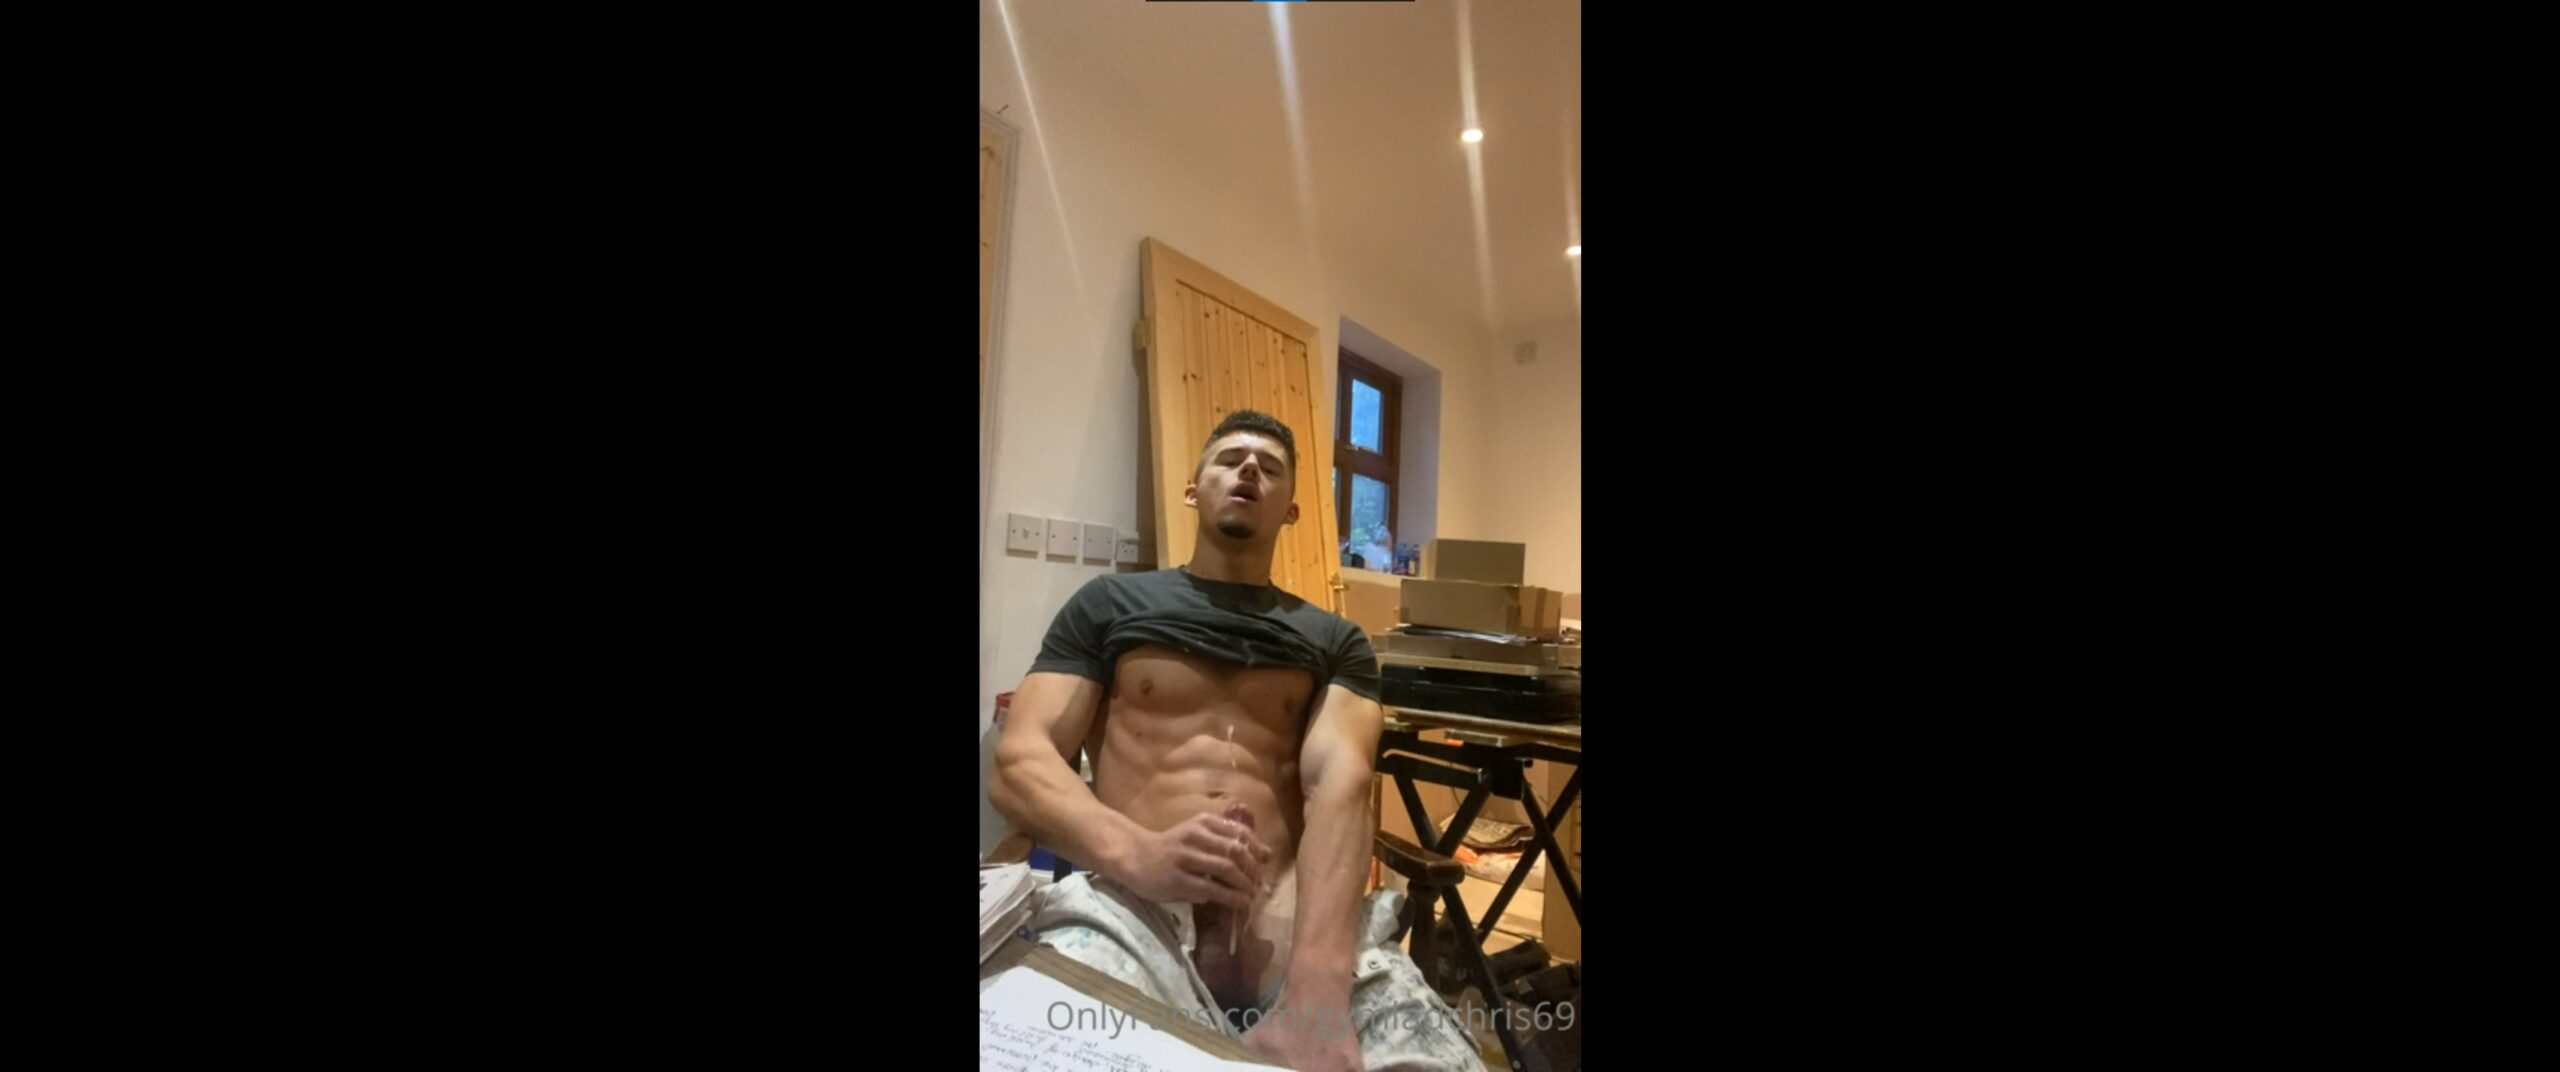 Jerking off while at work - gymladchris69